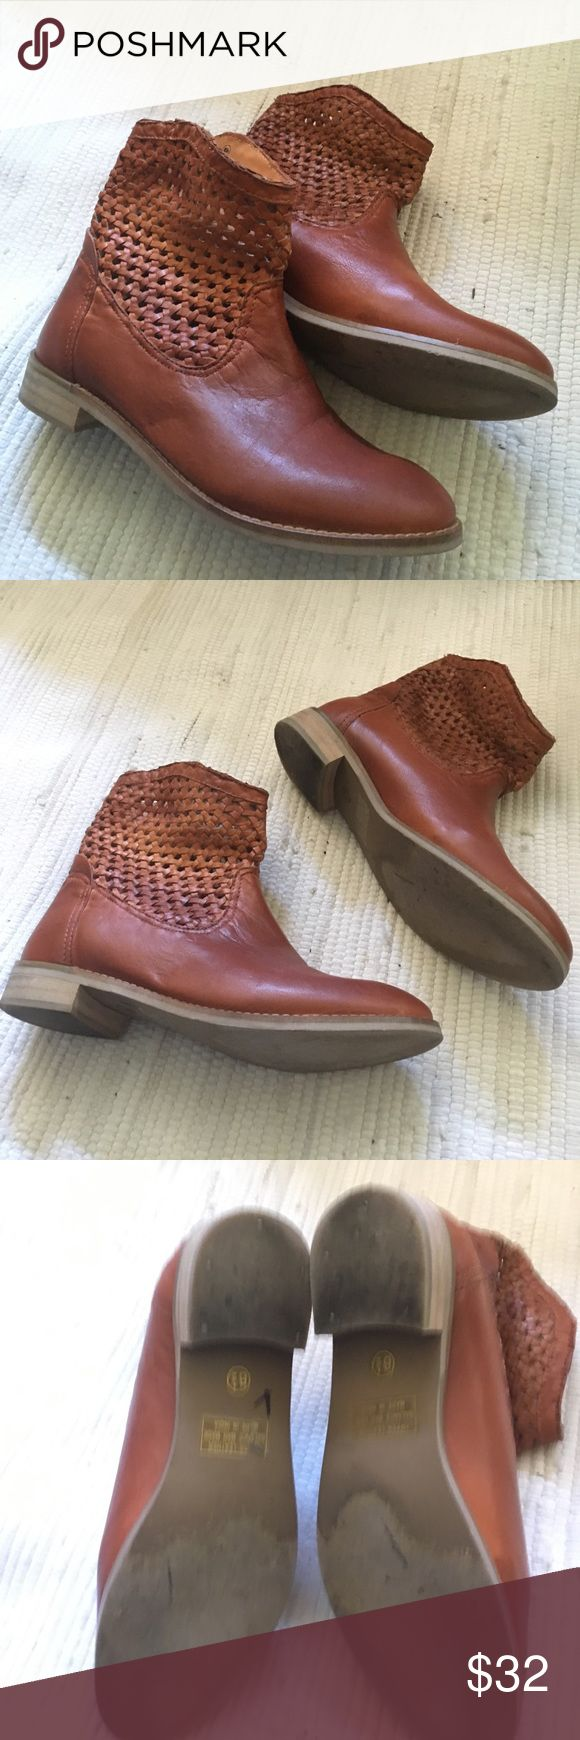 Seychelles booties Ankle boots! Woven design in a great color. It's a bit hard to describe- kind of like rust on the orange side. Worn a few times only. In good condition. Leather upper. Seychelles Shoes Ankle Boots & Booties